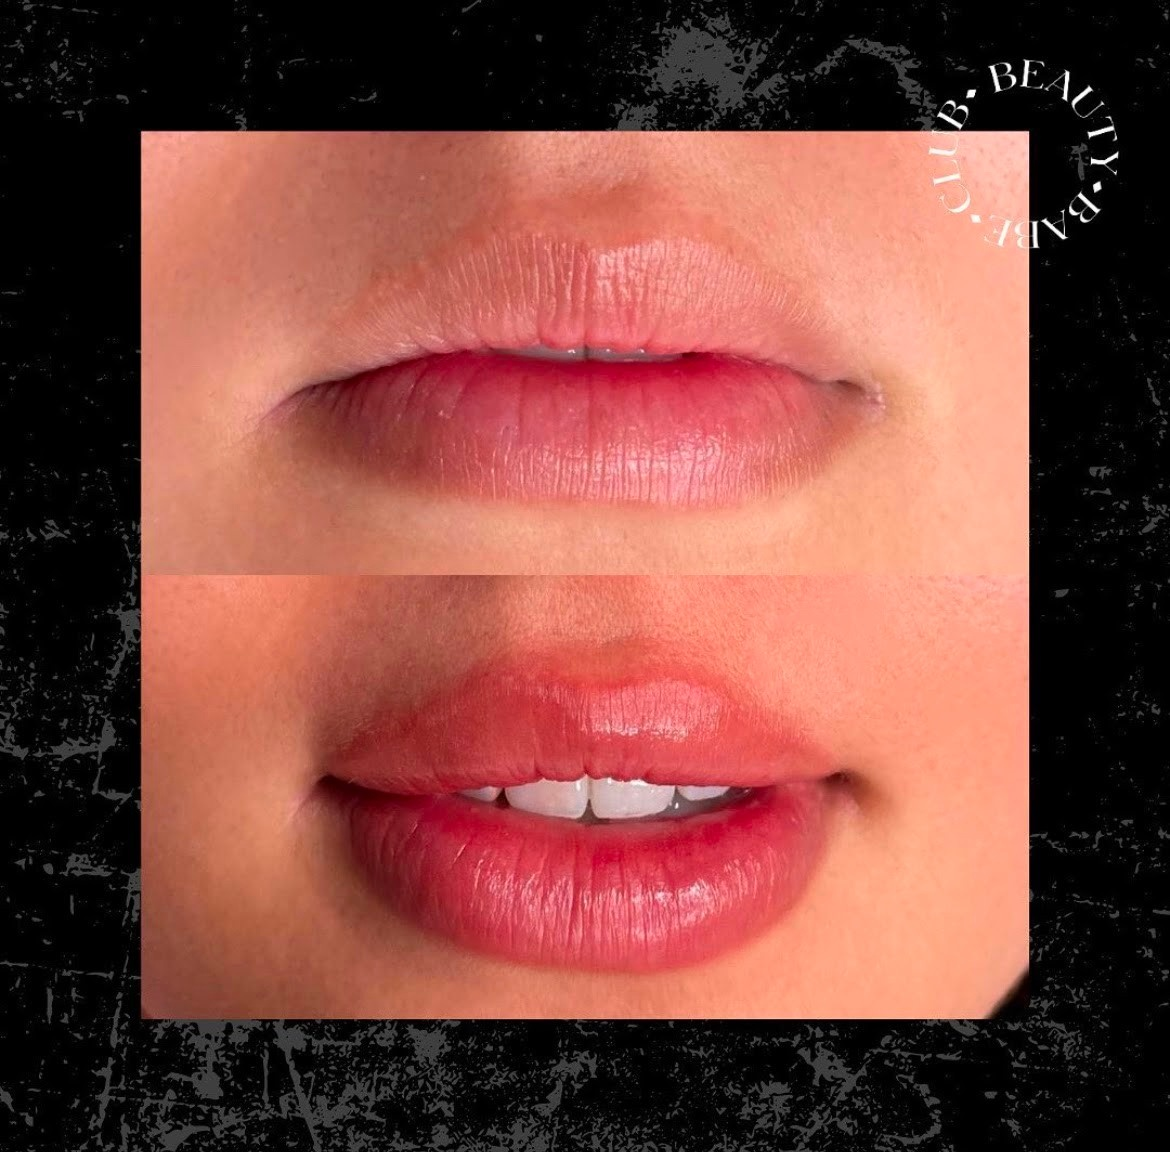 lip-blush-before-and-after